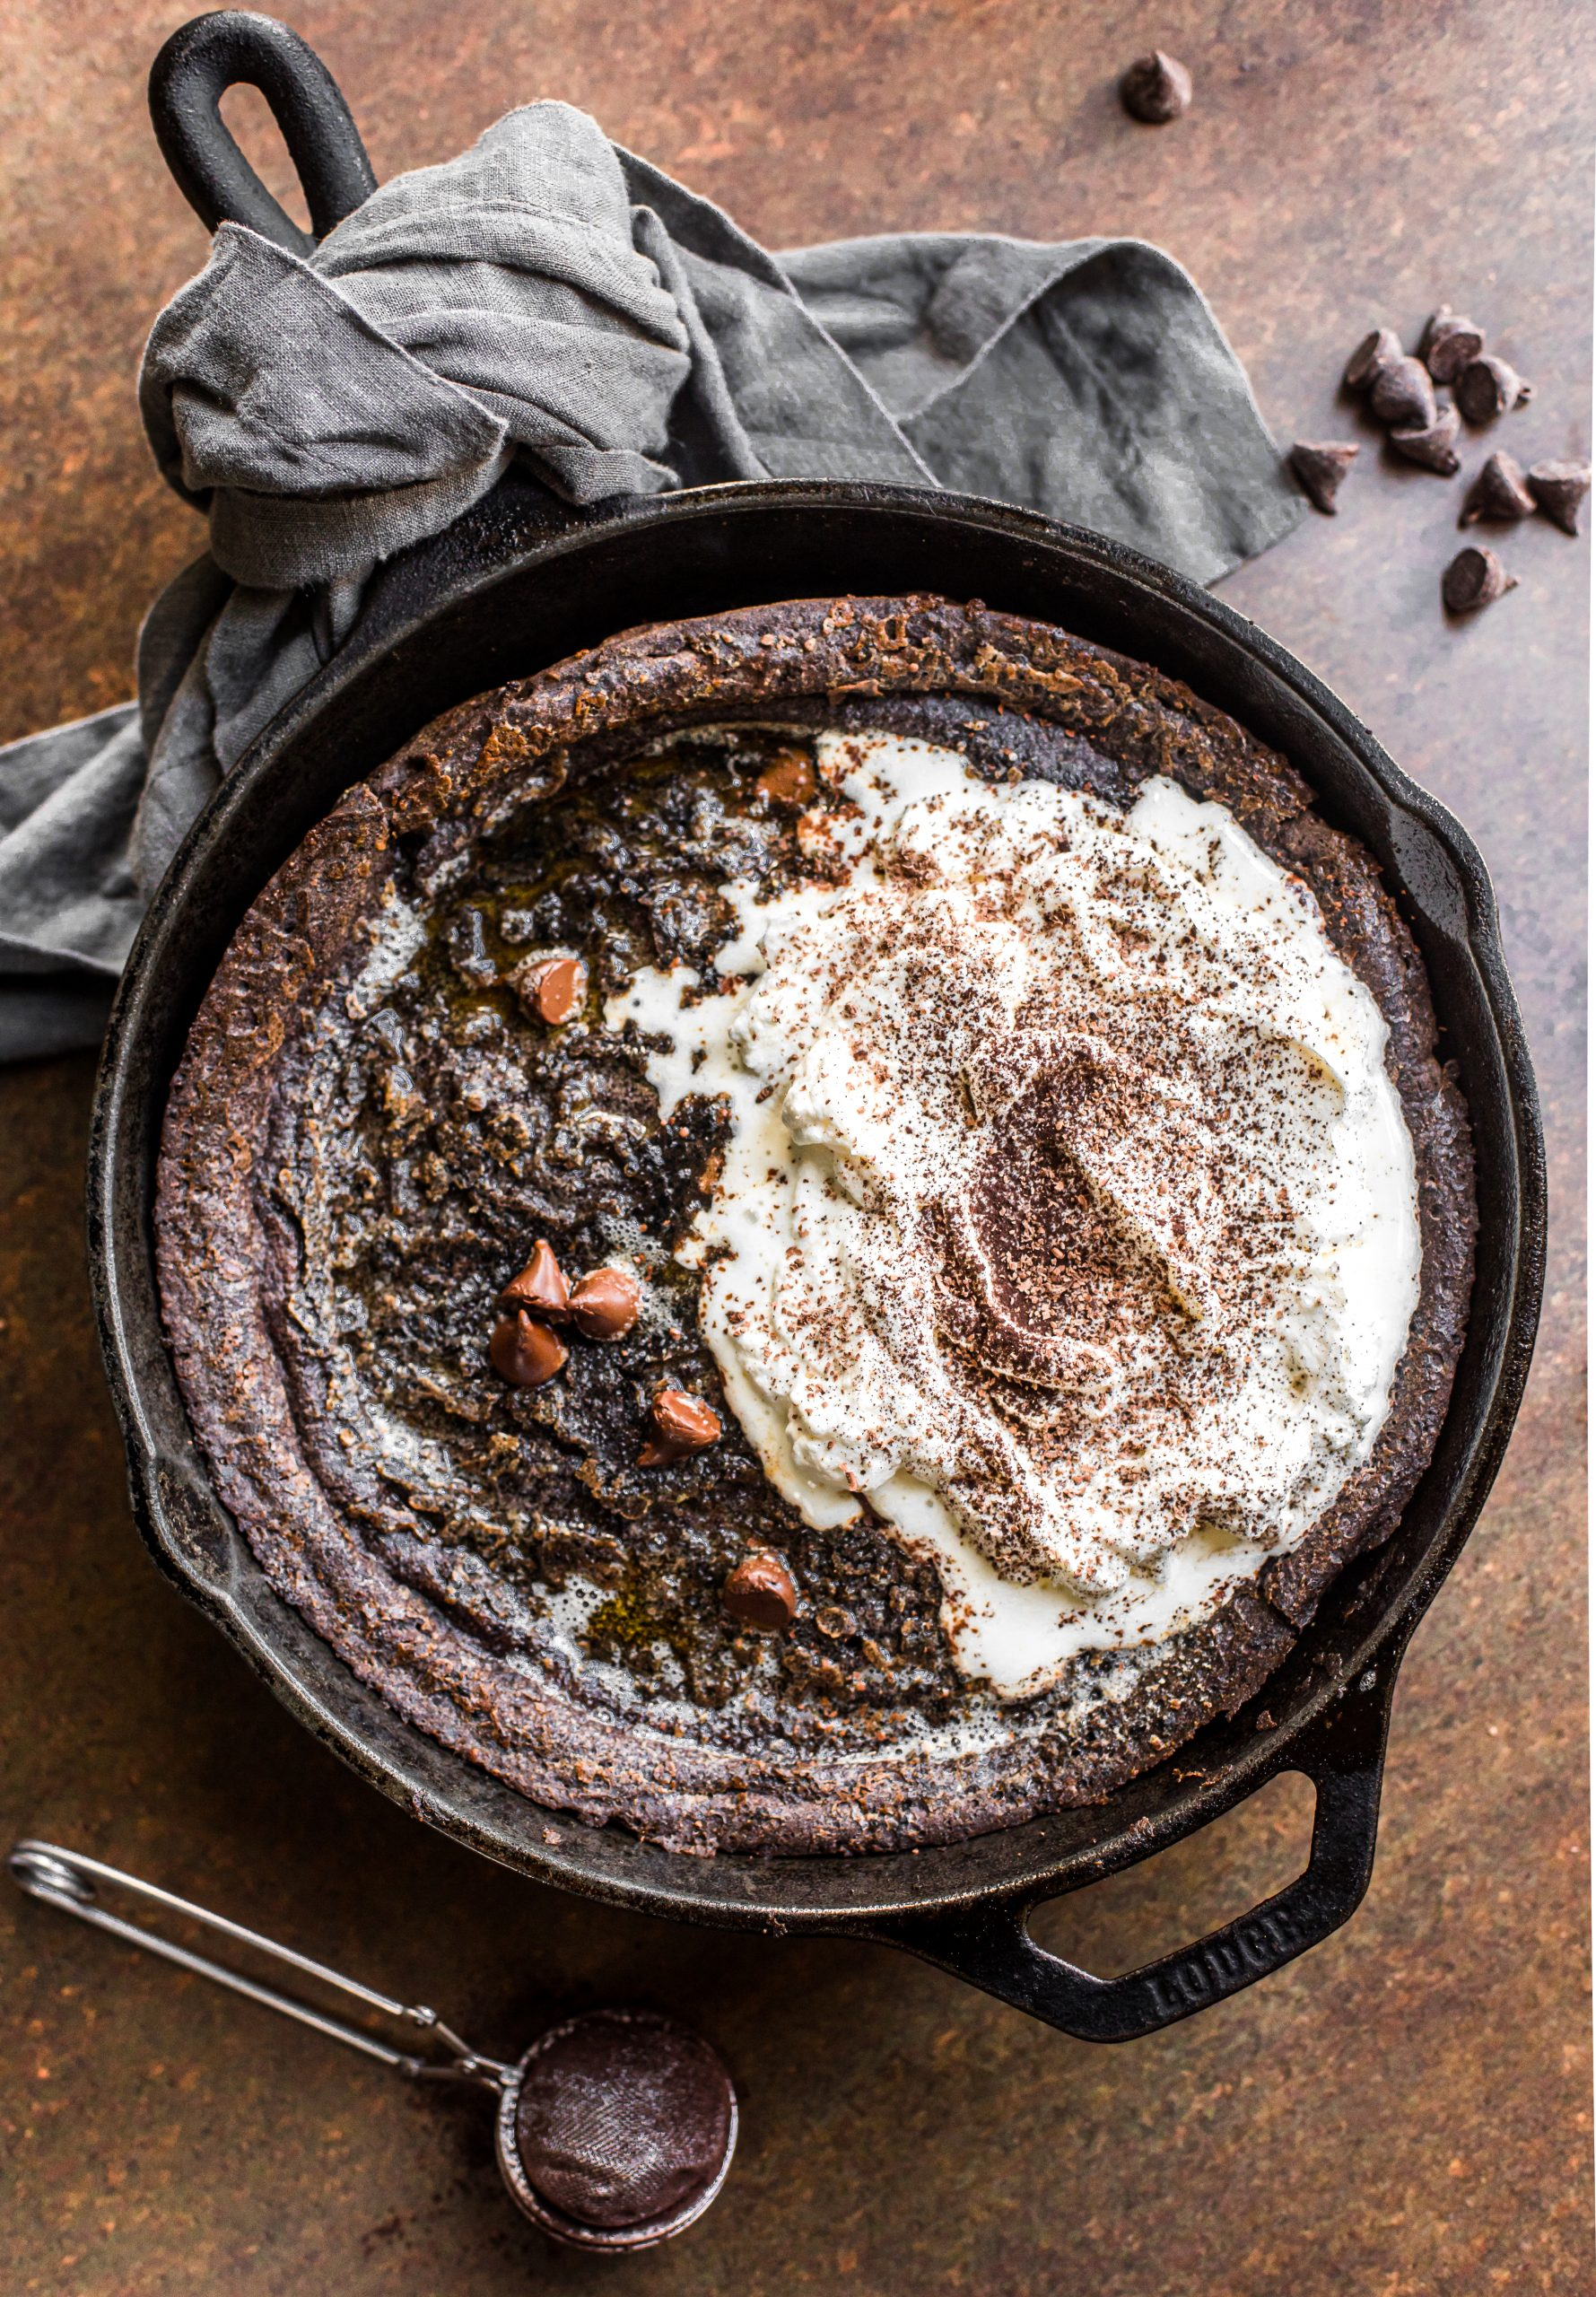 Chocolate Paleo Dutch Baby made with almond flour